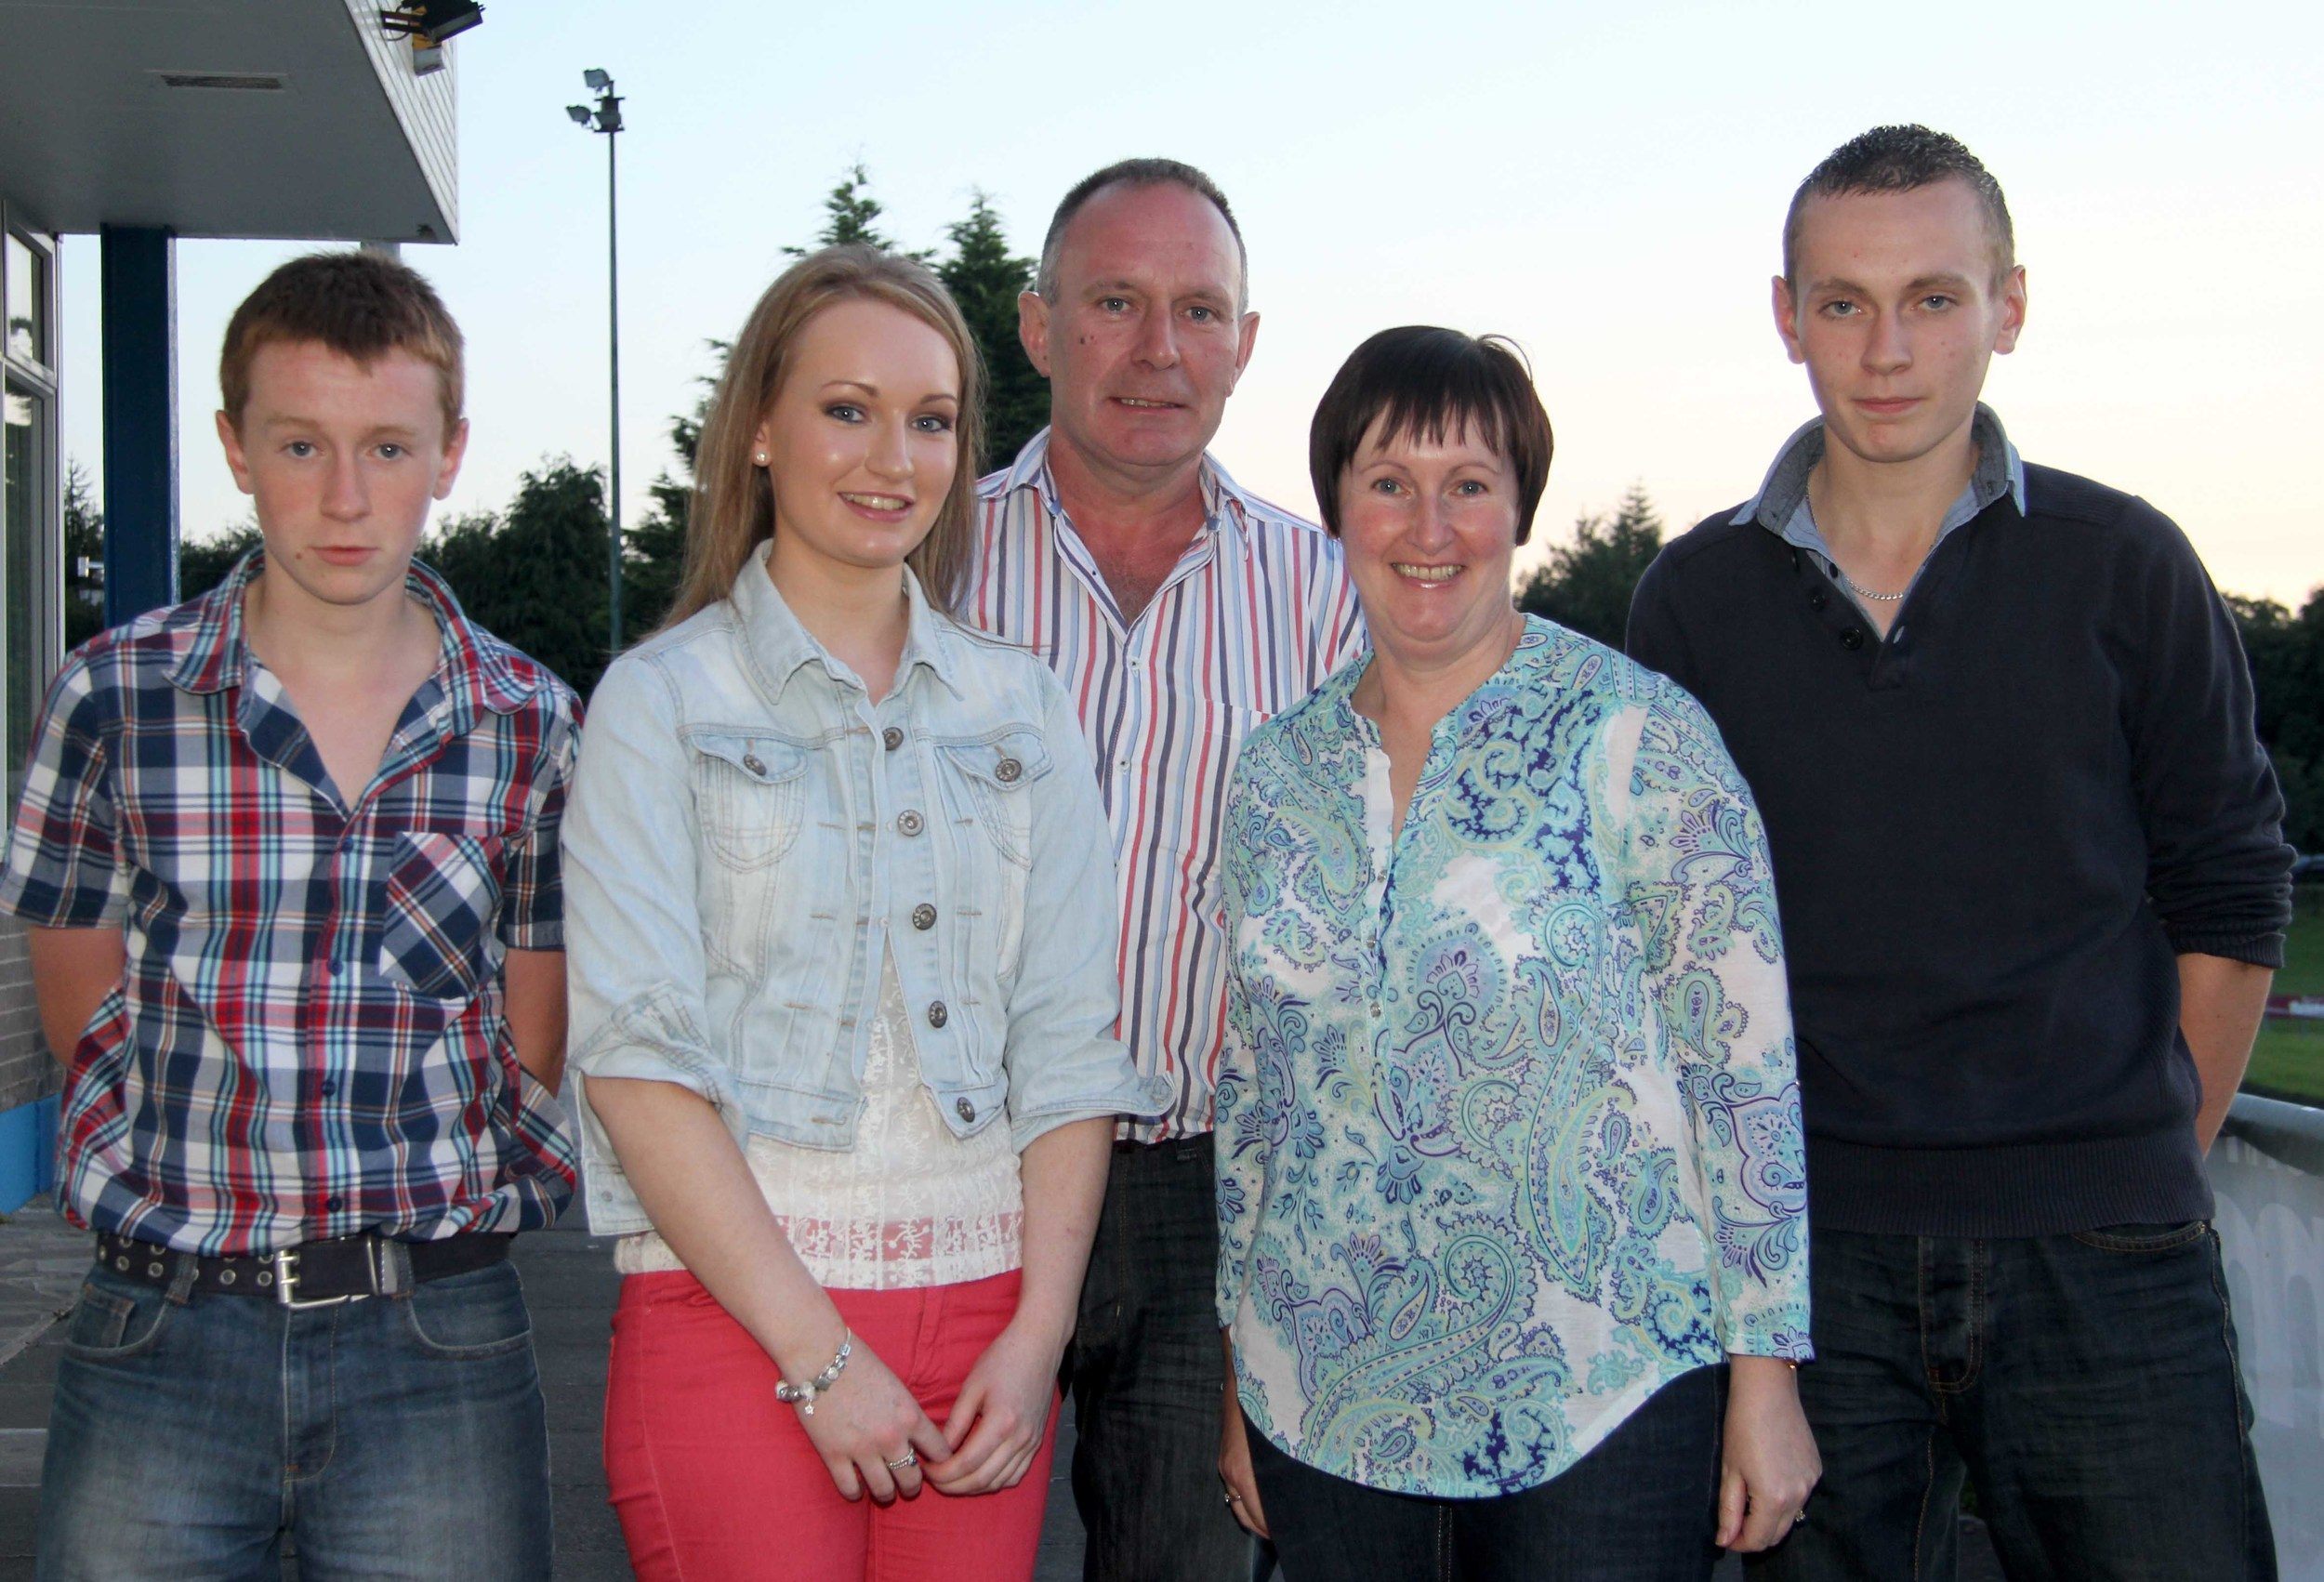 The Carson family, David, Mary, Gillian, Adrian and Darren, from Garrison, County Fermanagh, pictured at the Simmental Club BBQ. Picture: Julie Hazelton